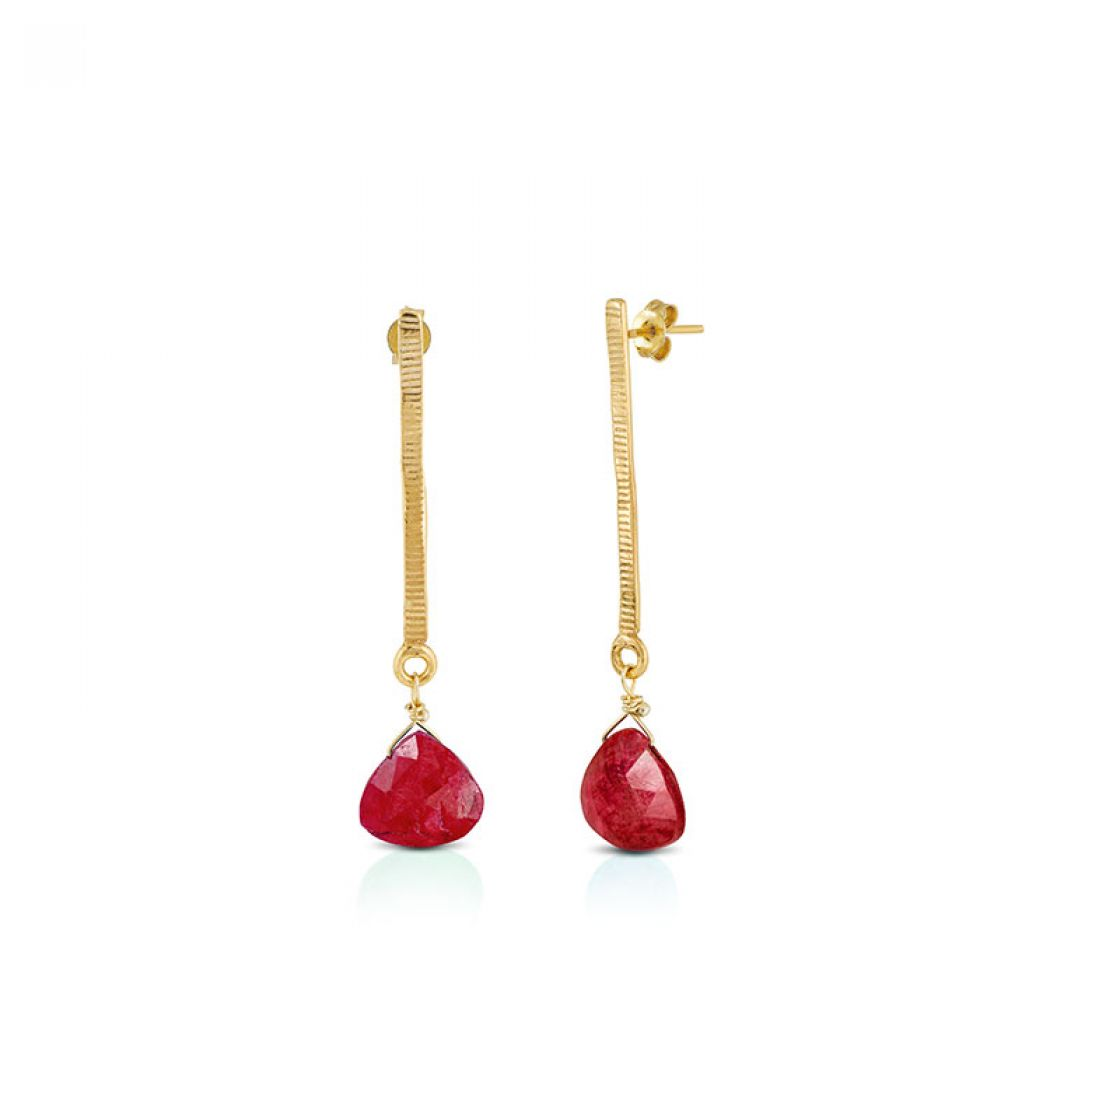 Earrings with line-hammered gold bars and drop-cut ruby stones.